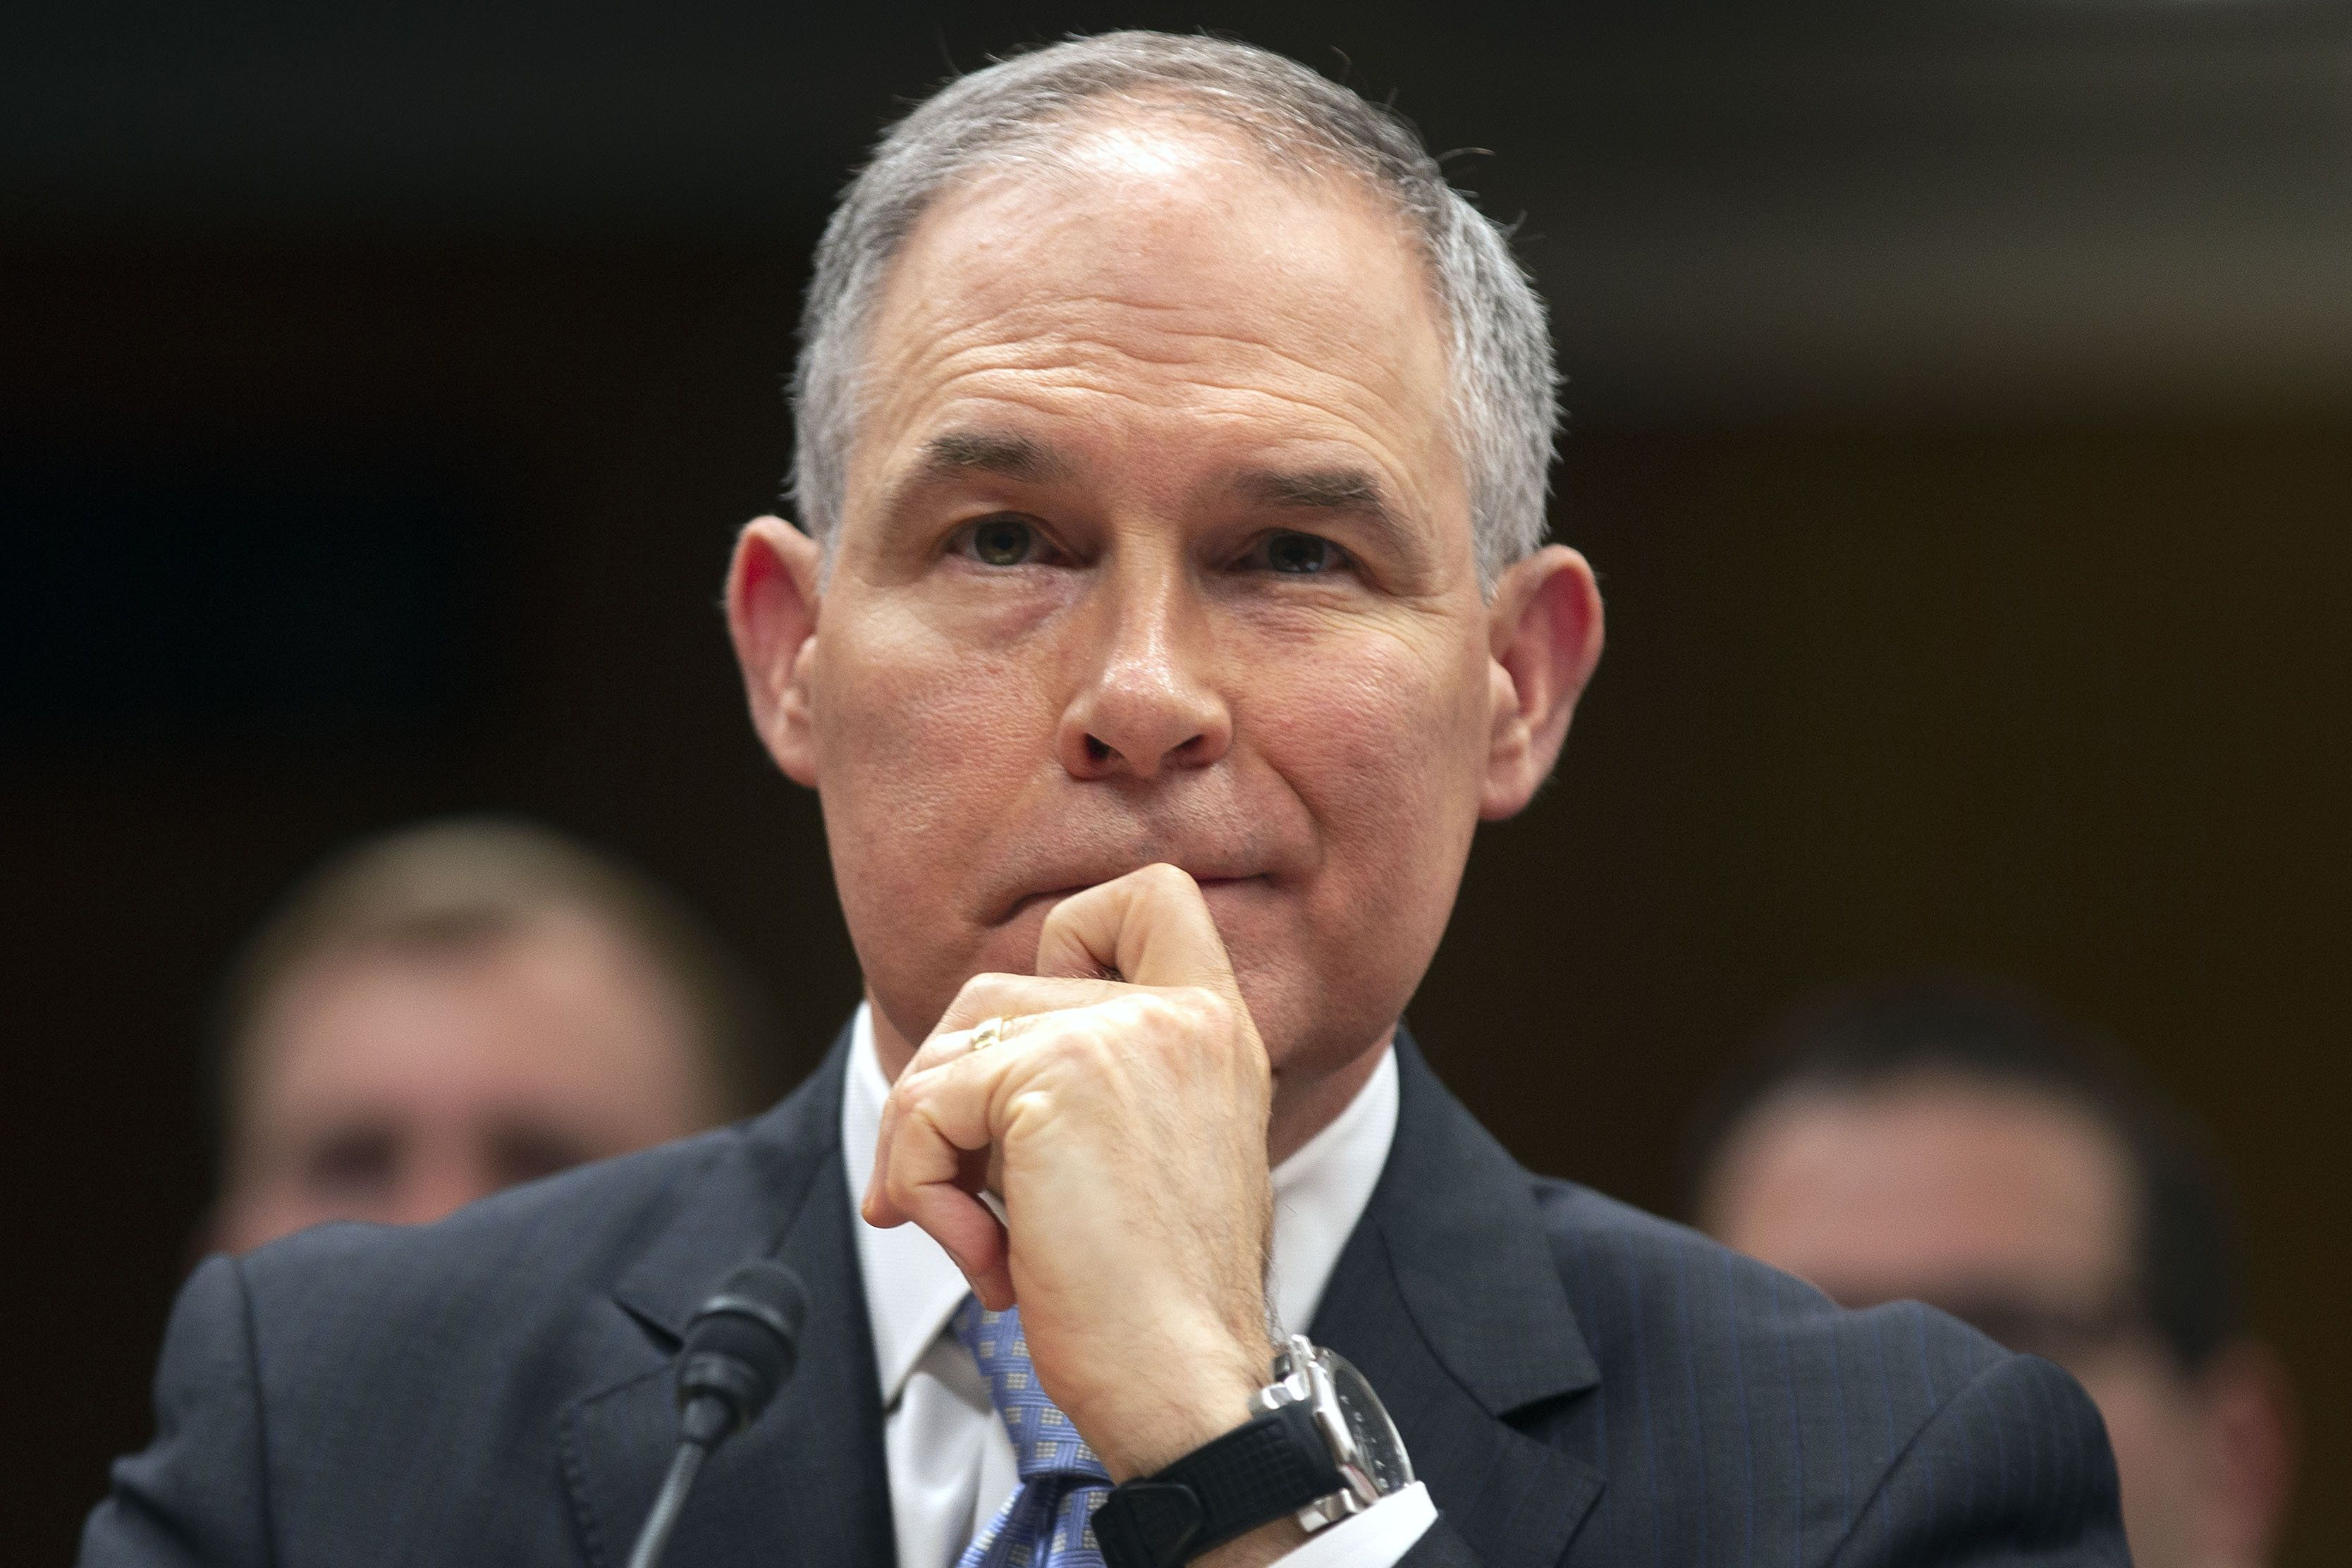 In Senate Hot Seat, Scott Pruitt Dodges Questions Over Mounting Scandals